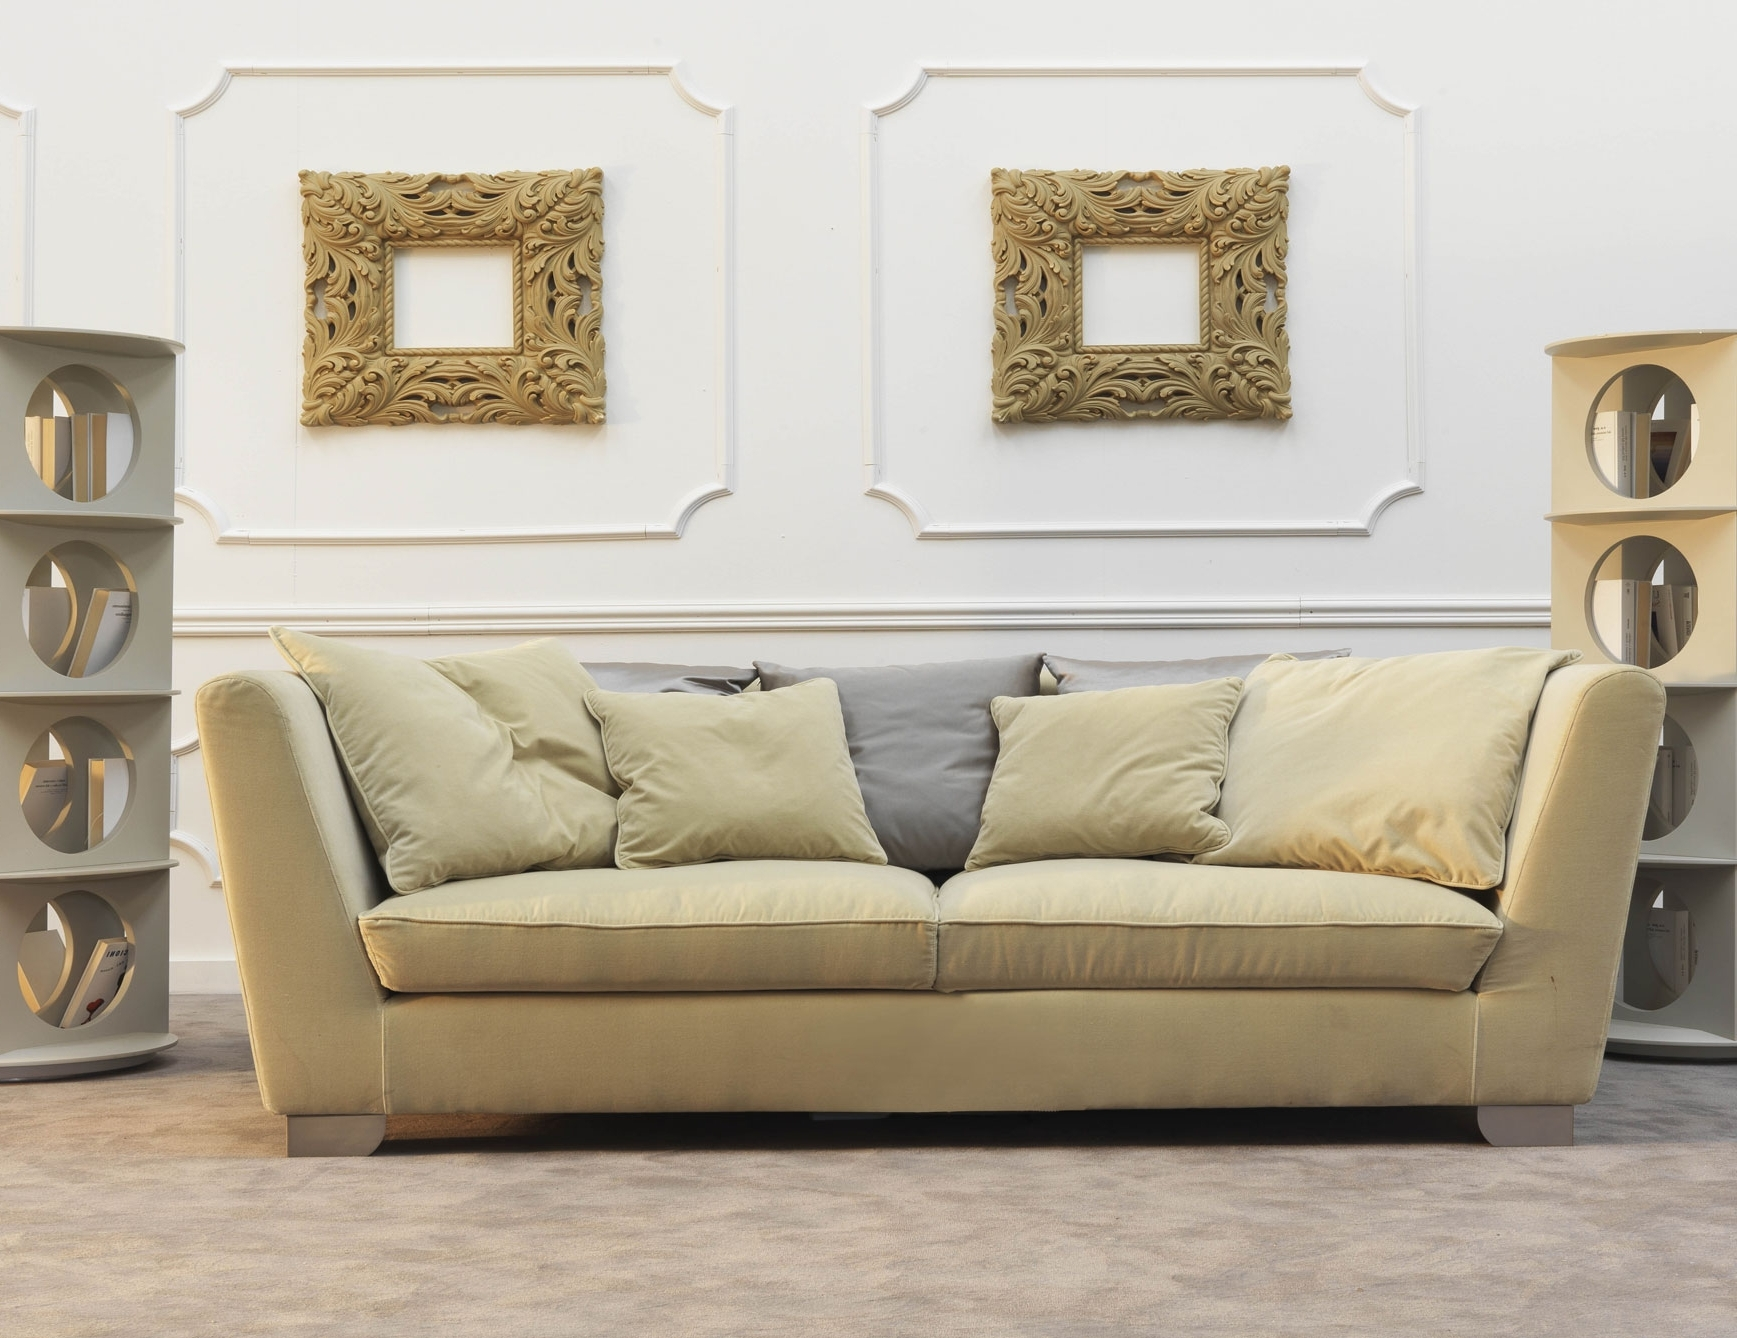 Nella Vetrina Douillet Dou02 Italian Designer Cream Fabric Sofa Regarding Well Liked Sofas And Chairs (View 6 of 15)